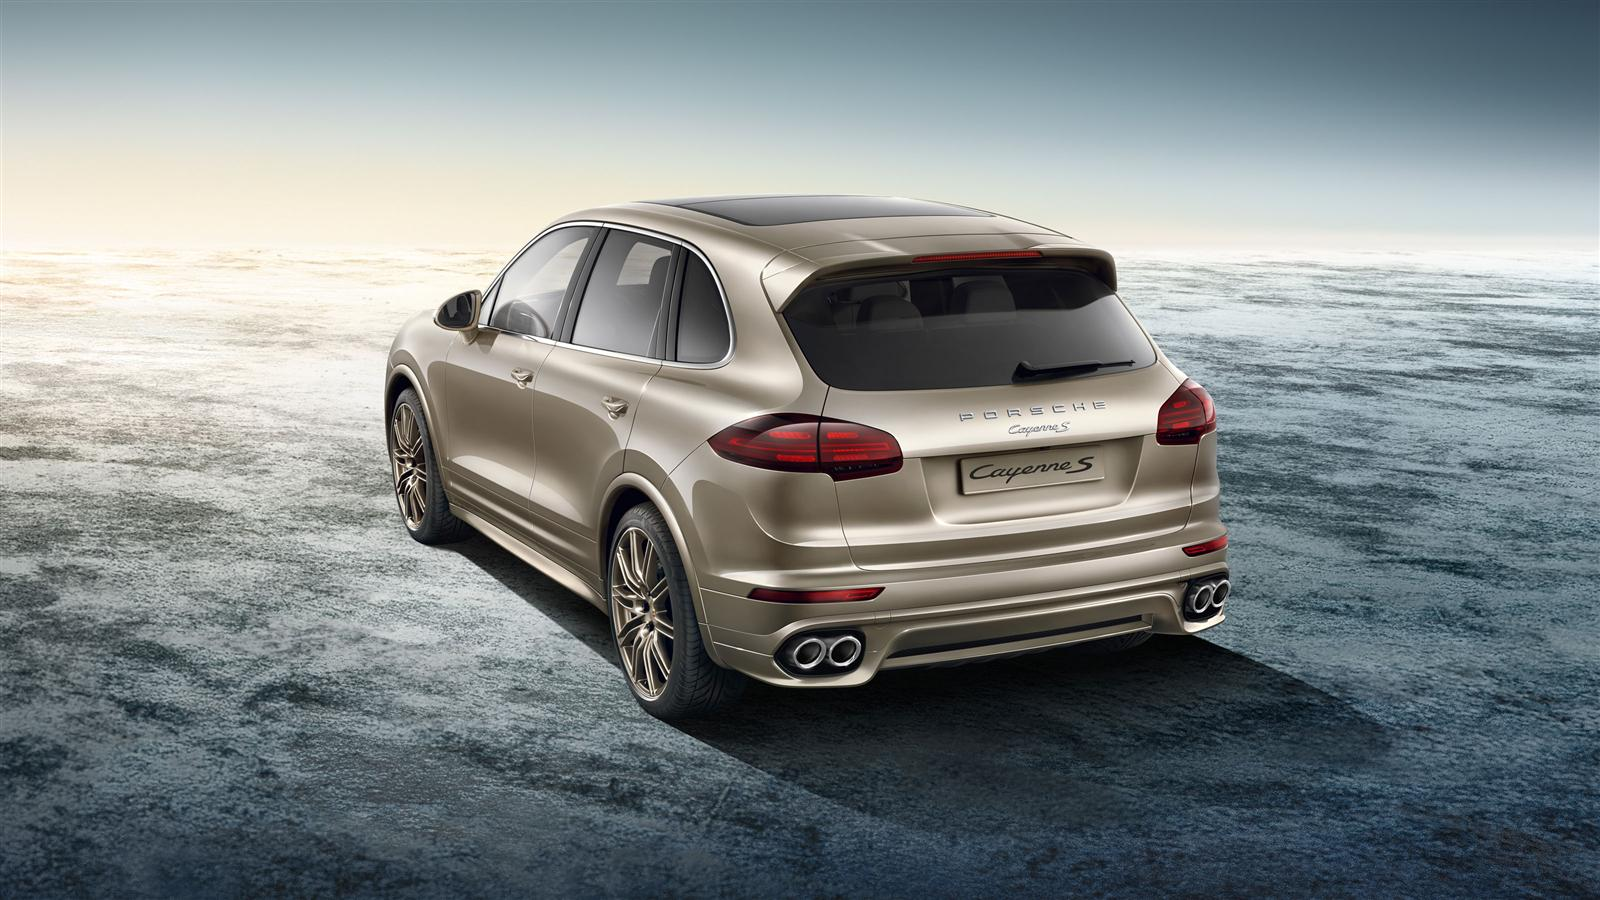 Exclusive Cayenne S